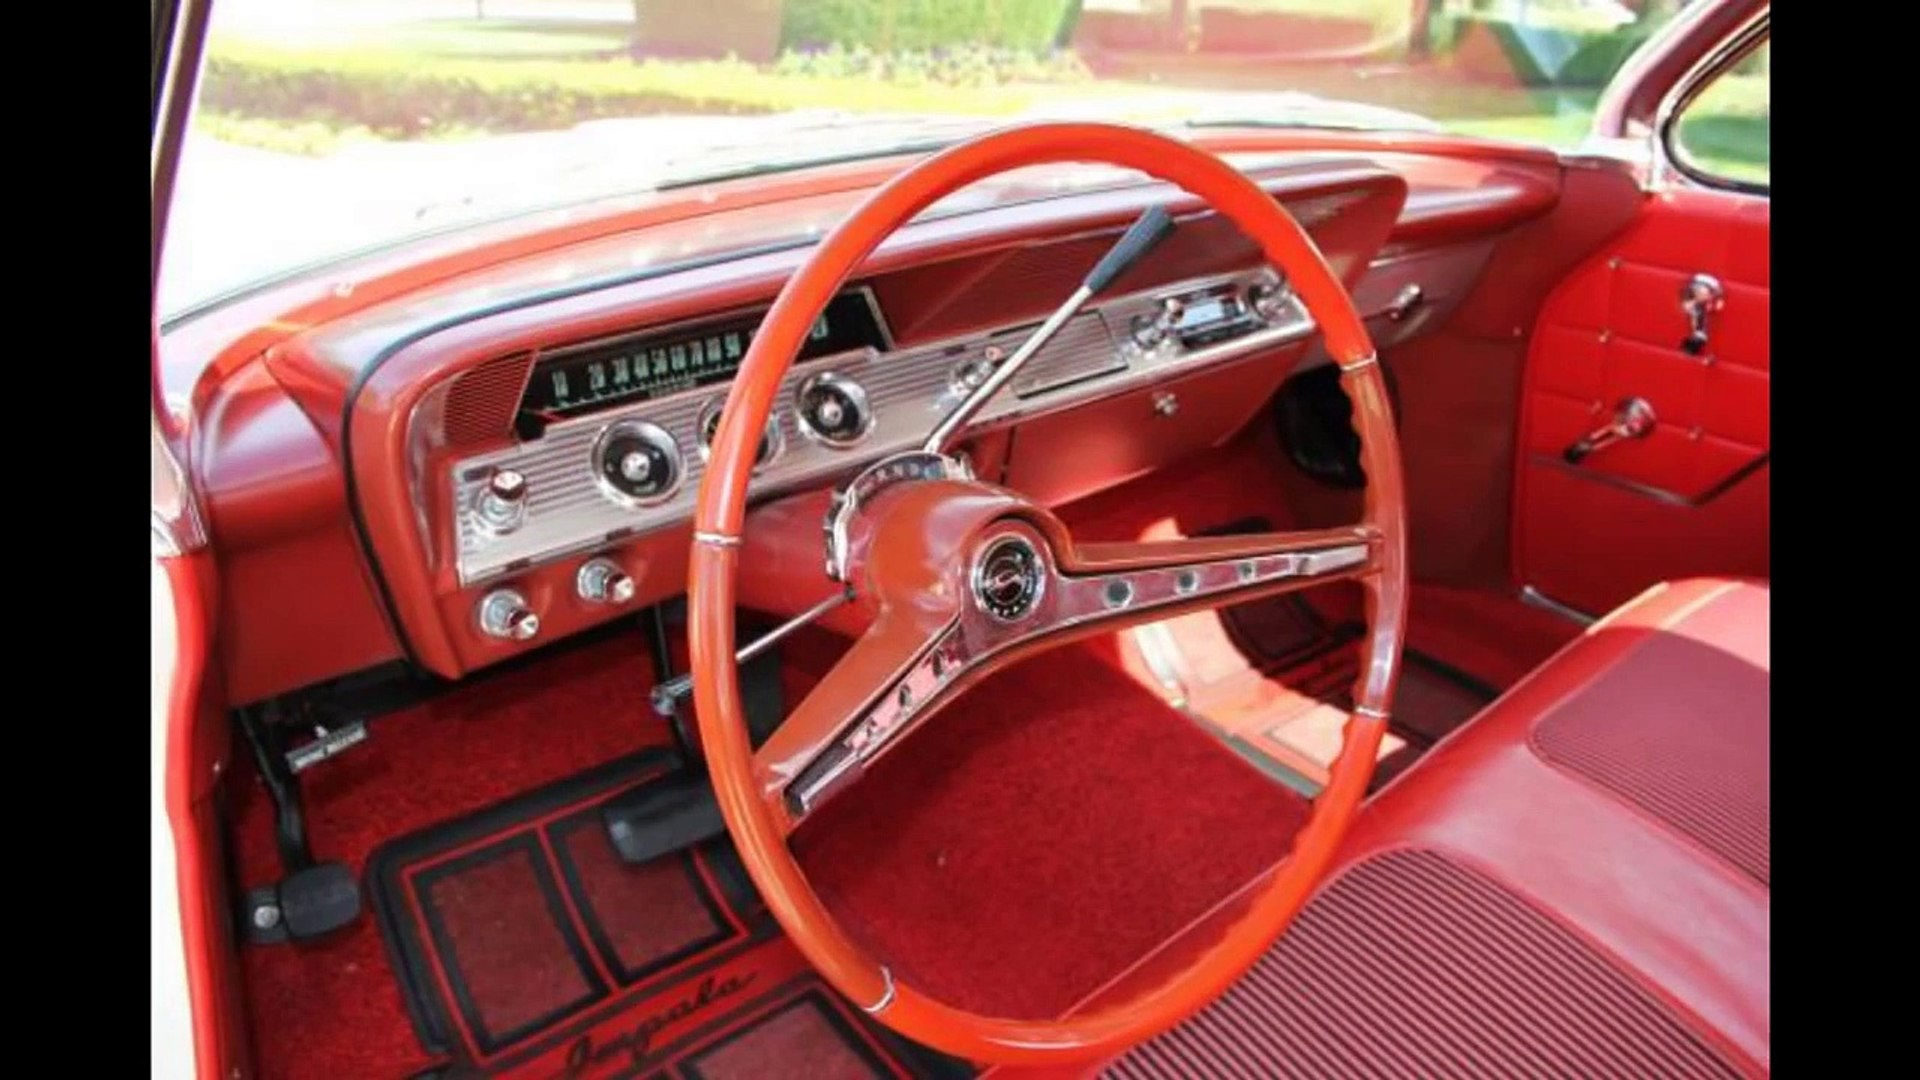 1962 Chevy Impala Classic Muscle Car for Sale in MI Vanguard Motor Sales